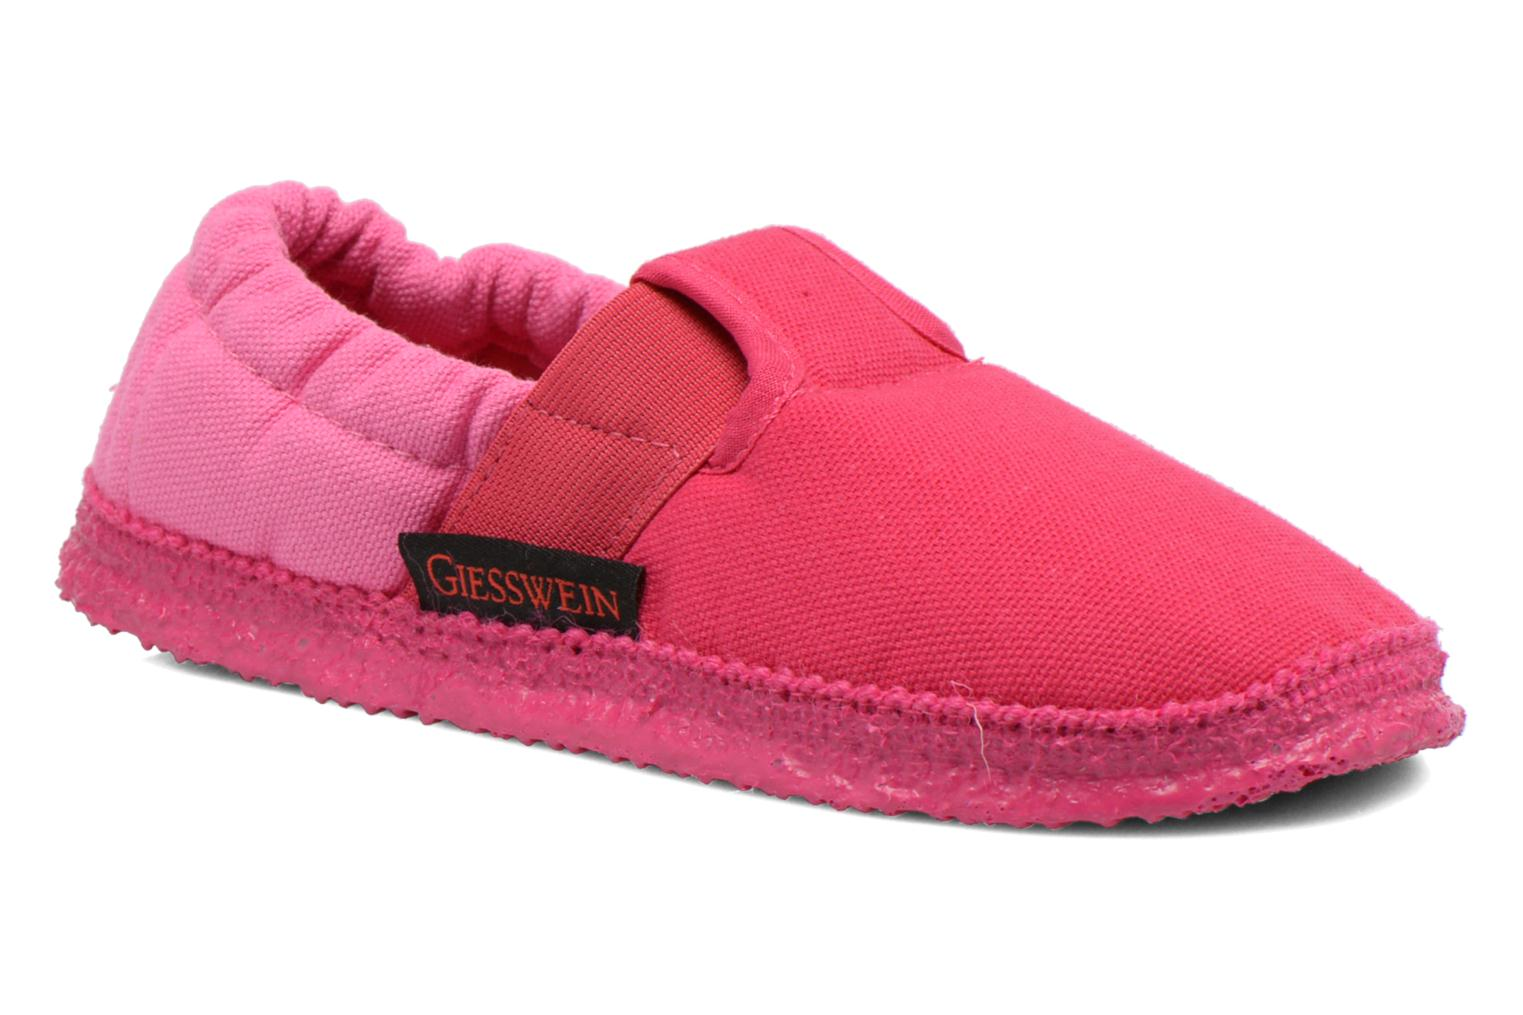 Chaussons Giesswein Aichach Rose vue détail/paire